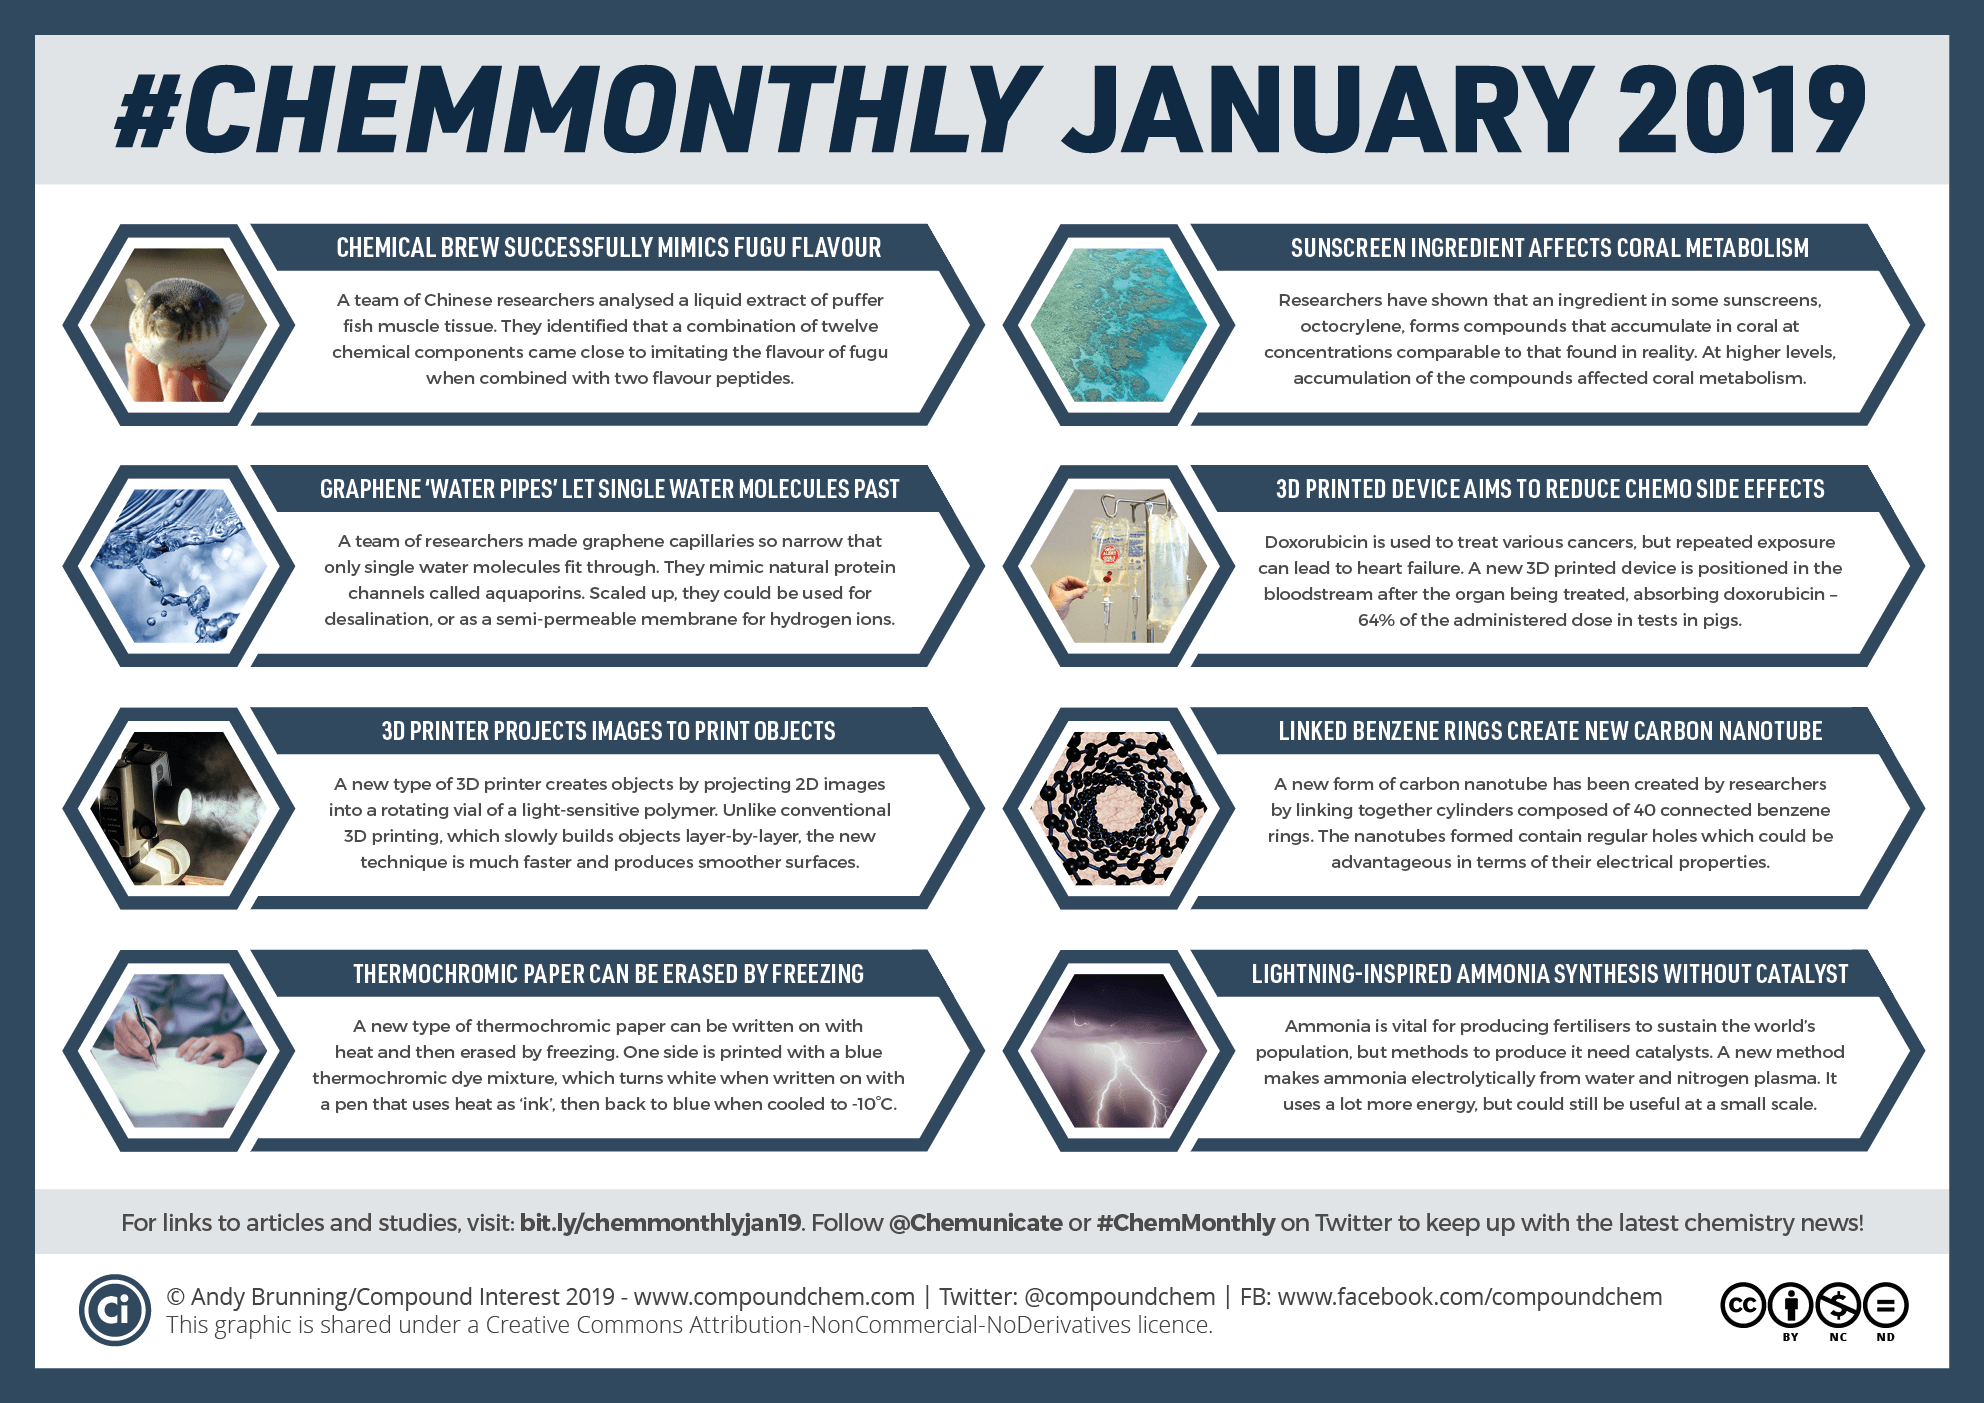 #ChemMonthly January 2019: Mimicking fugu flavour, graphene water pipes, and new nanotubes